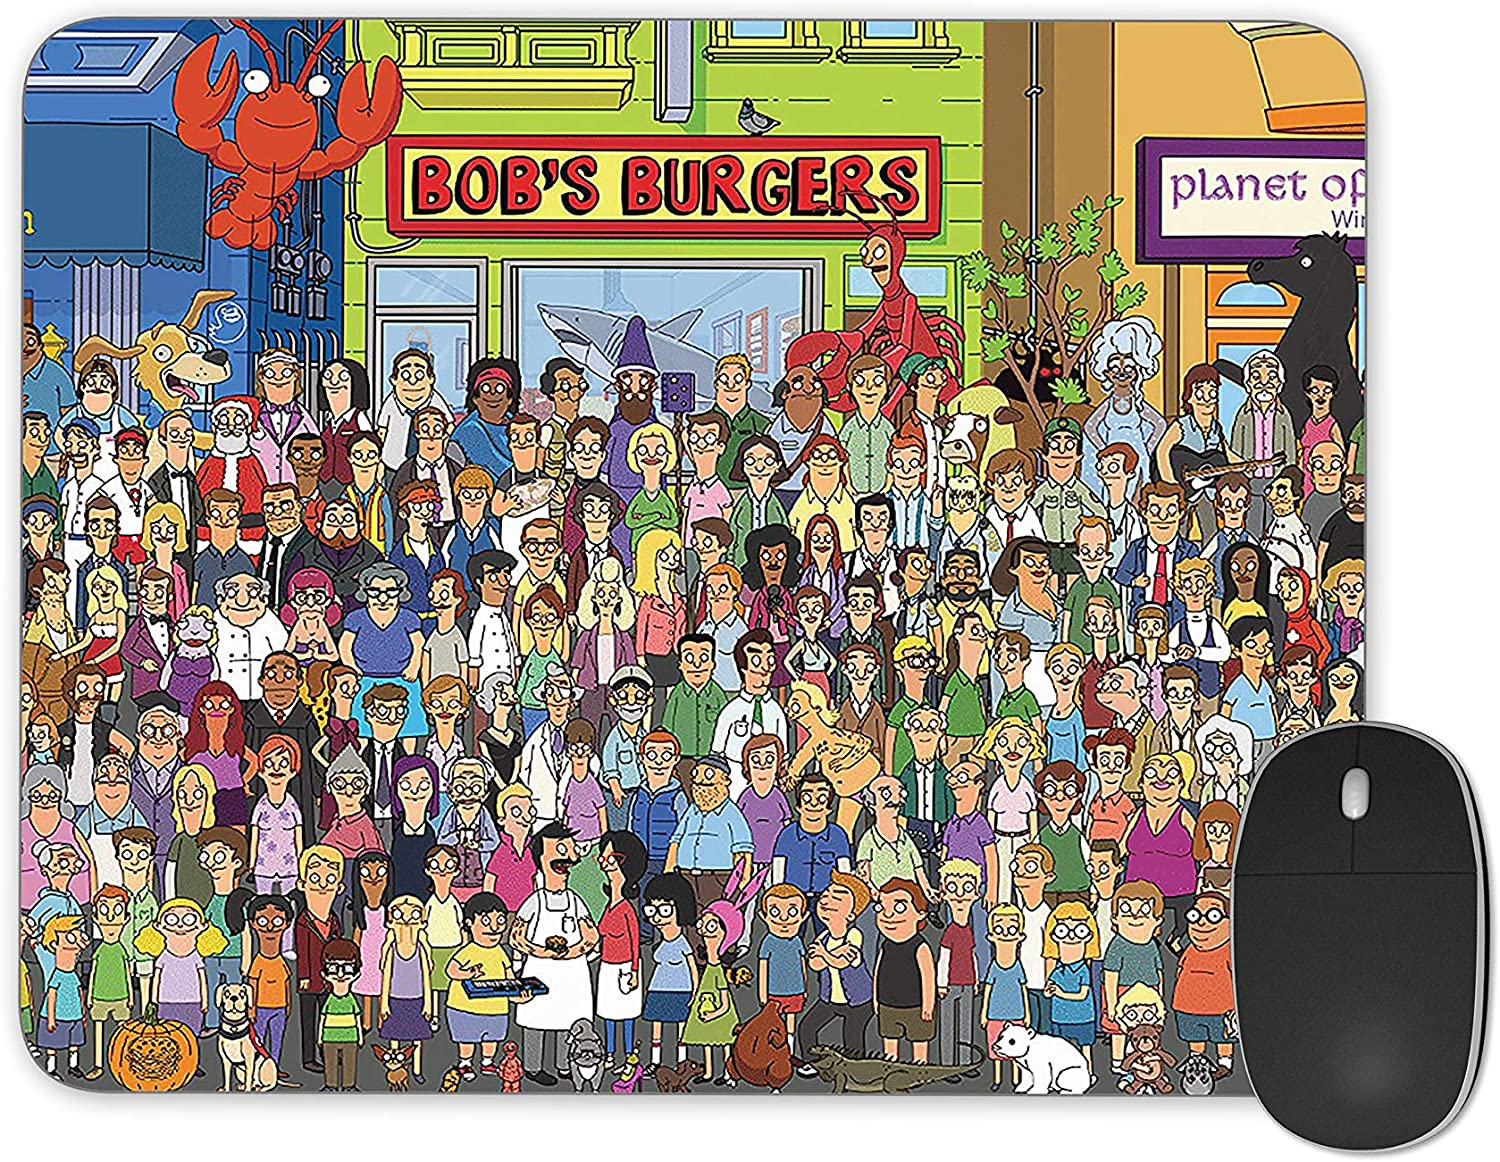 JNKPOAI Good-Looking Animation Series Anti - Slip Mouse Pad Bob's Burgers Anti-Slip Mouse Pad Office Computer Game Mouse Pad(Bob's Burgers)